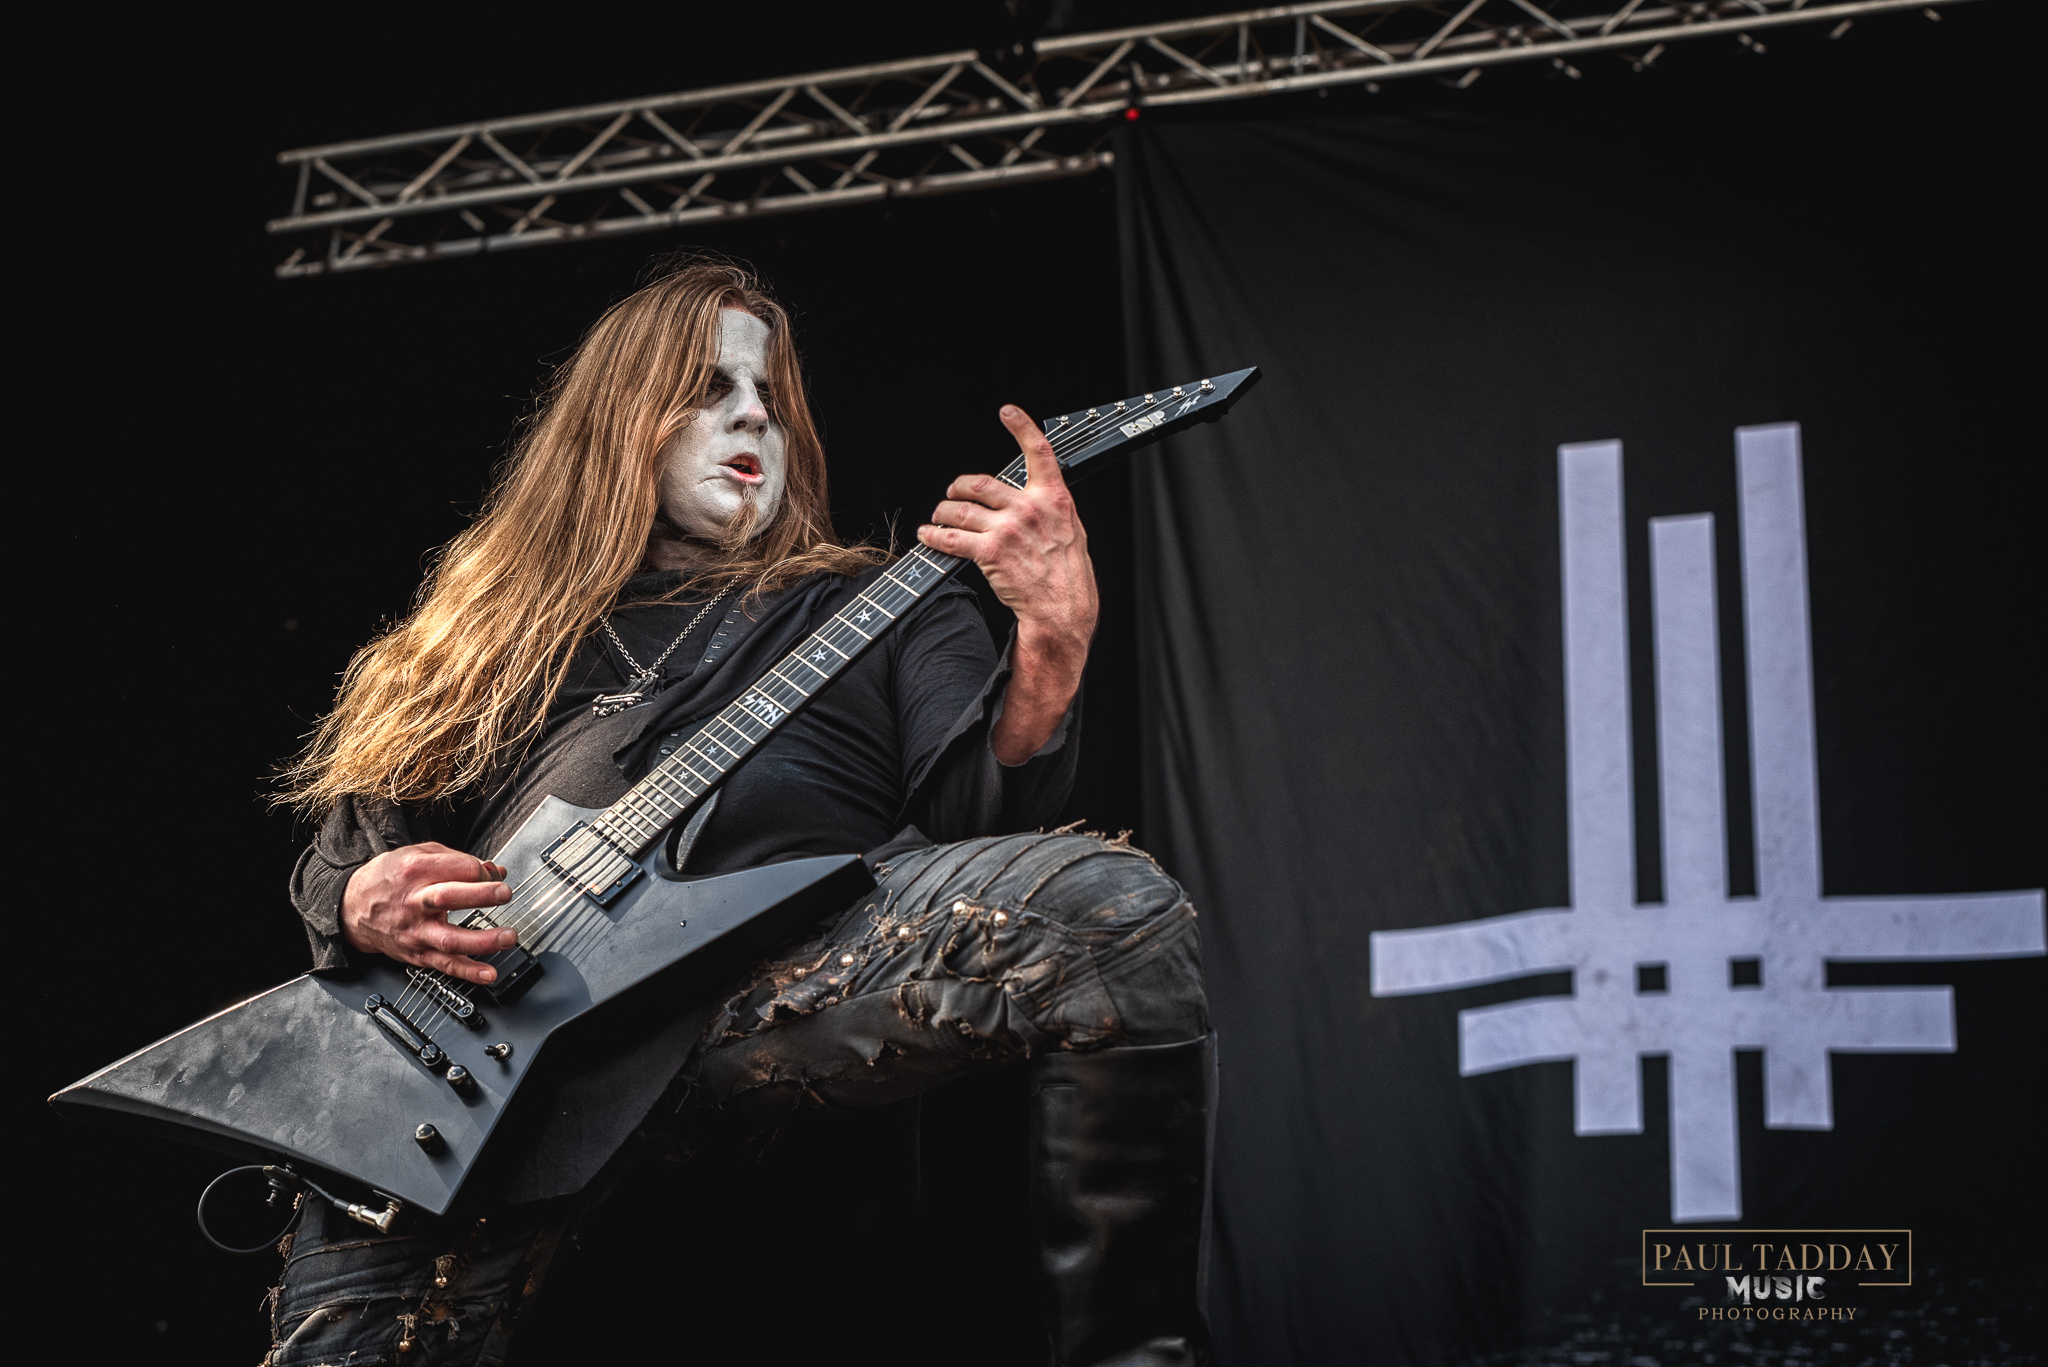 behemoth - download melbourne - march 2019 - web - paul tadday photography - 11.jpg